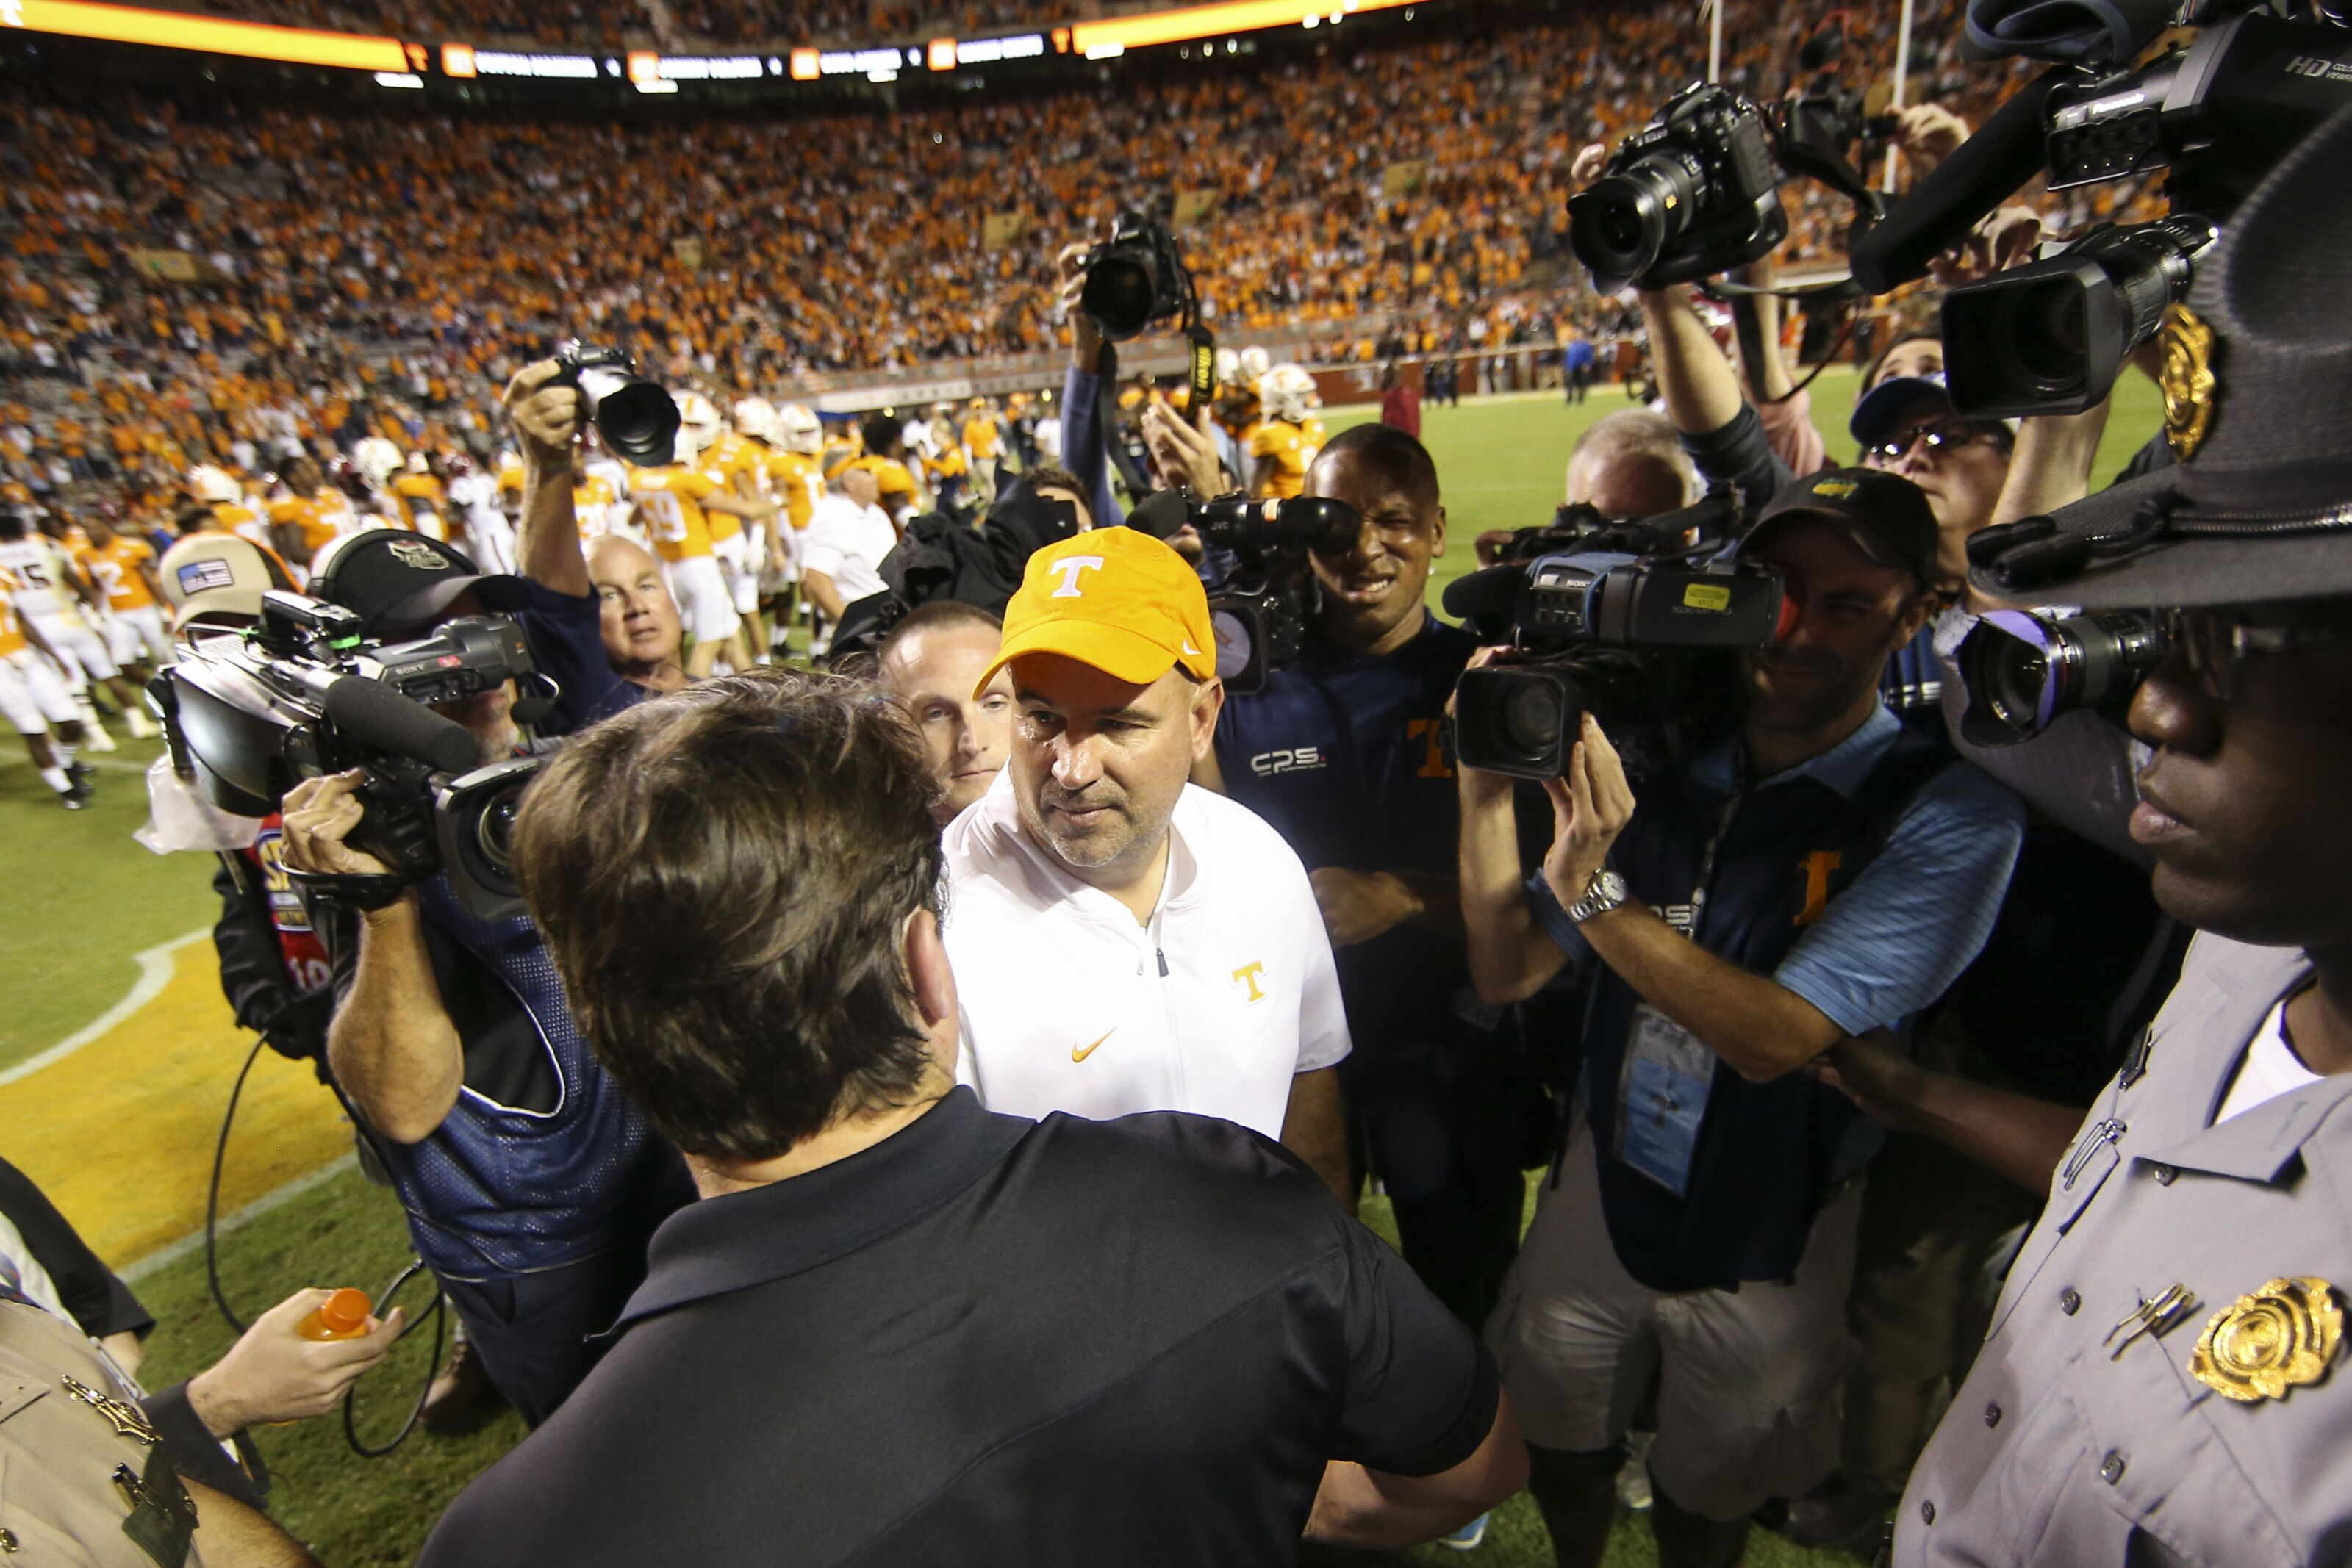 Tennessee football: Vols could potentially exploit coaching changes among 2020 opponents